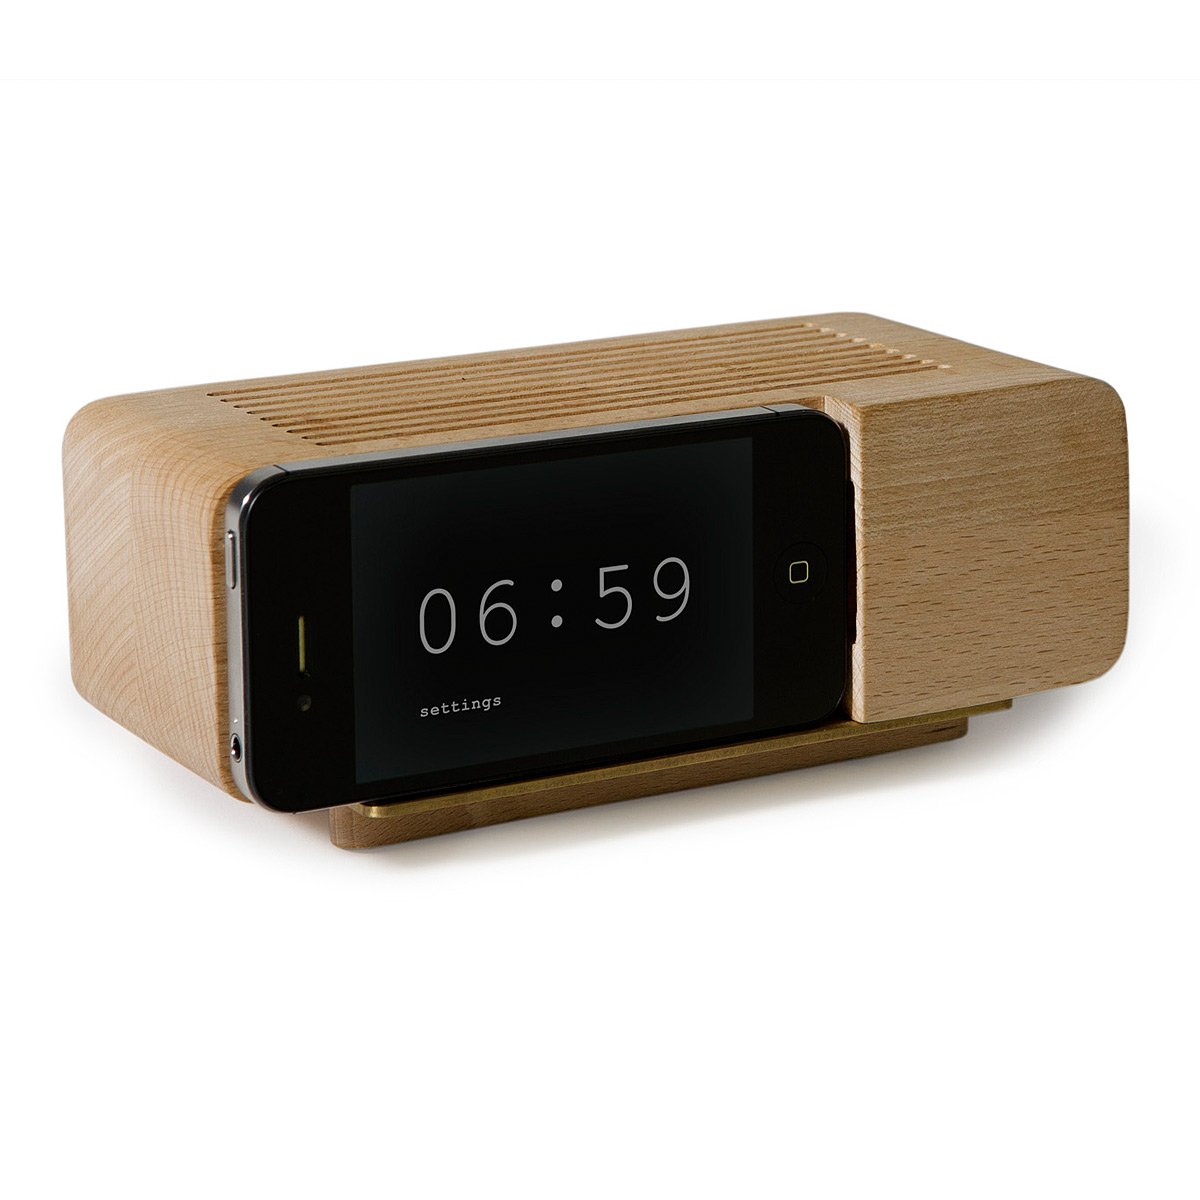 Iphone Alarm Dock by Jonas Damon